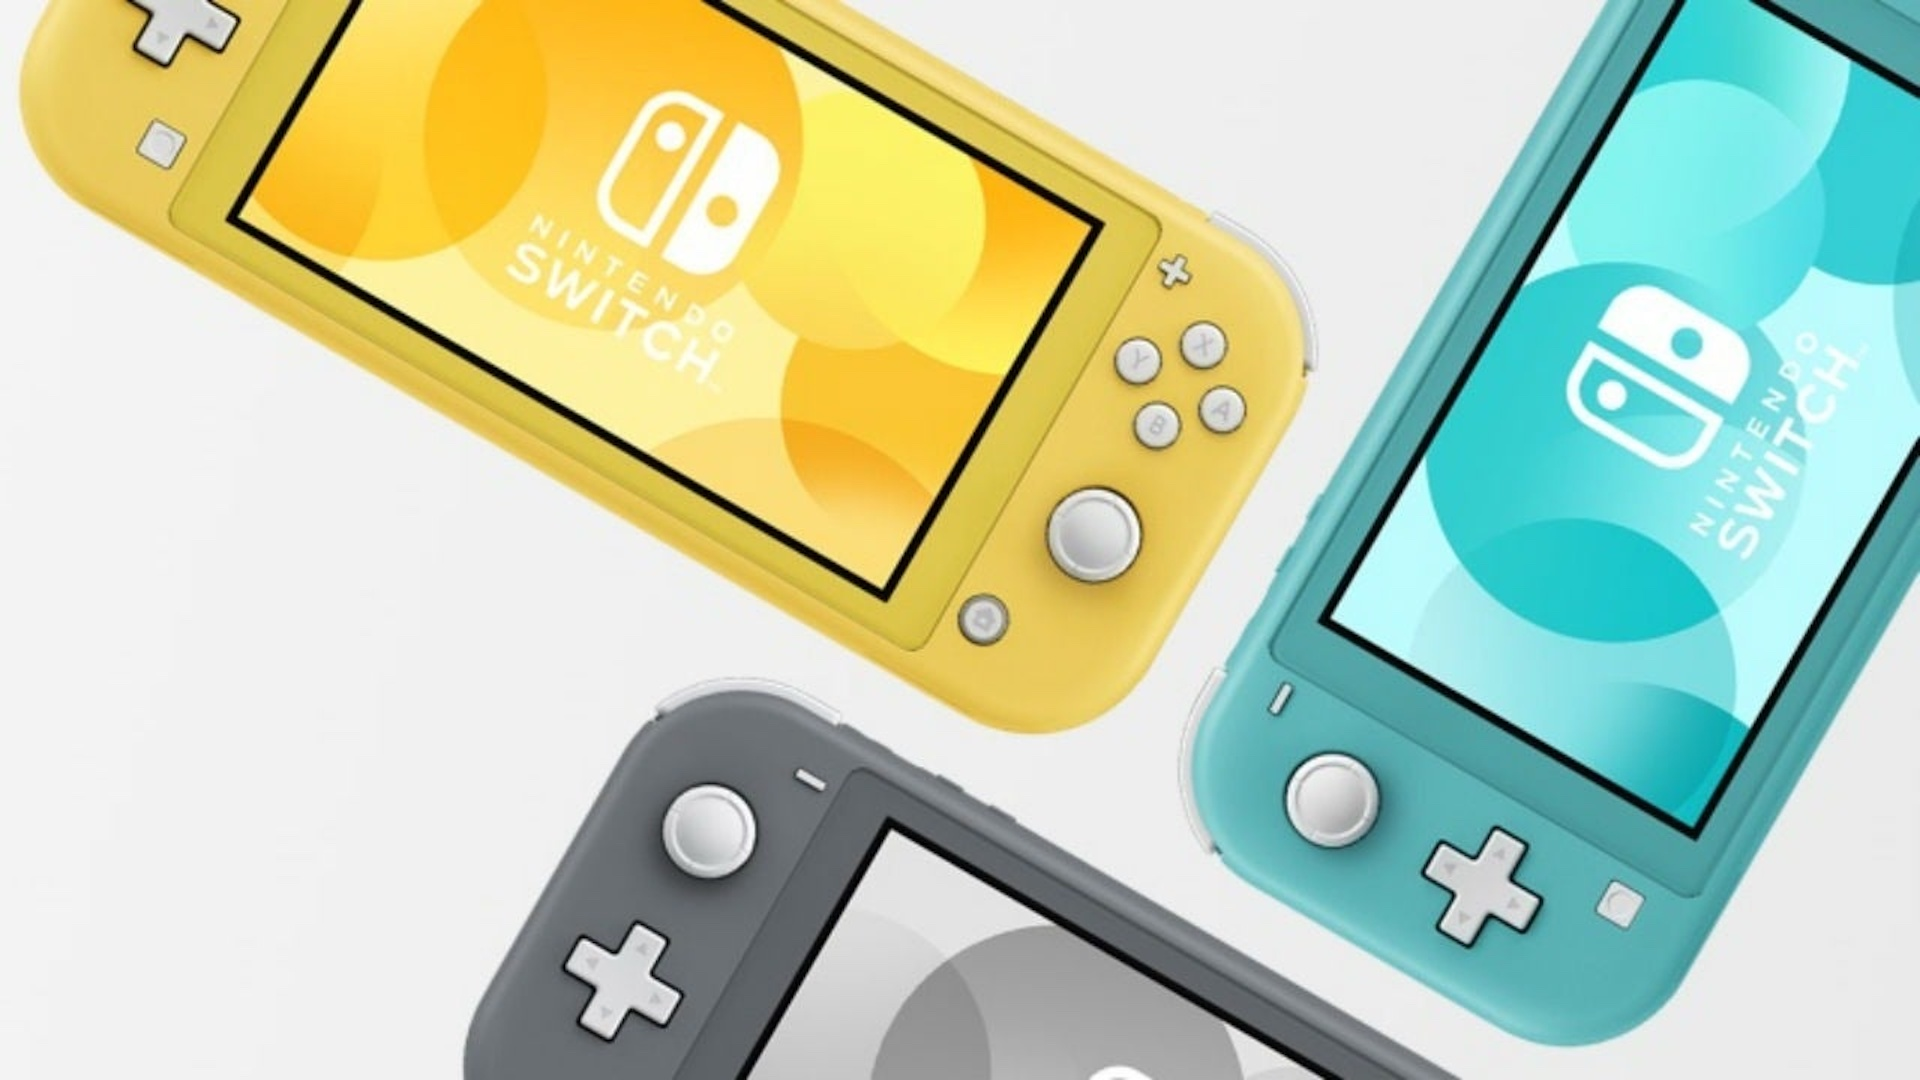 switch lite image